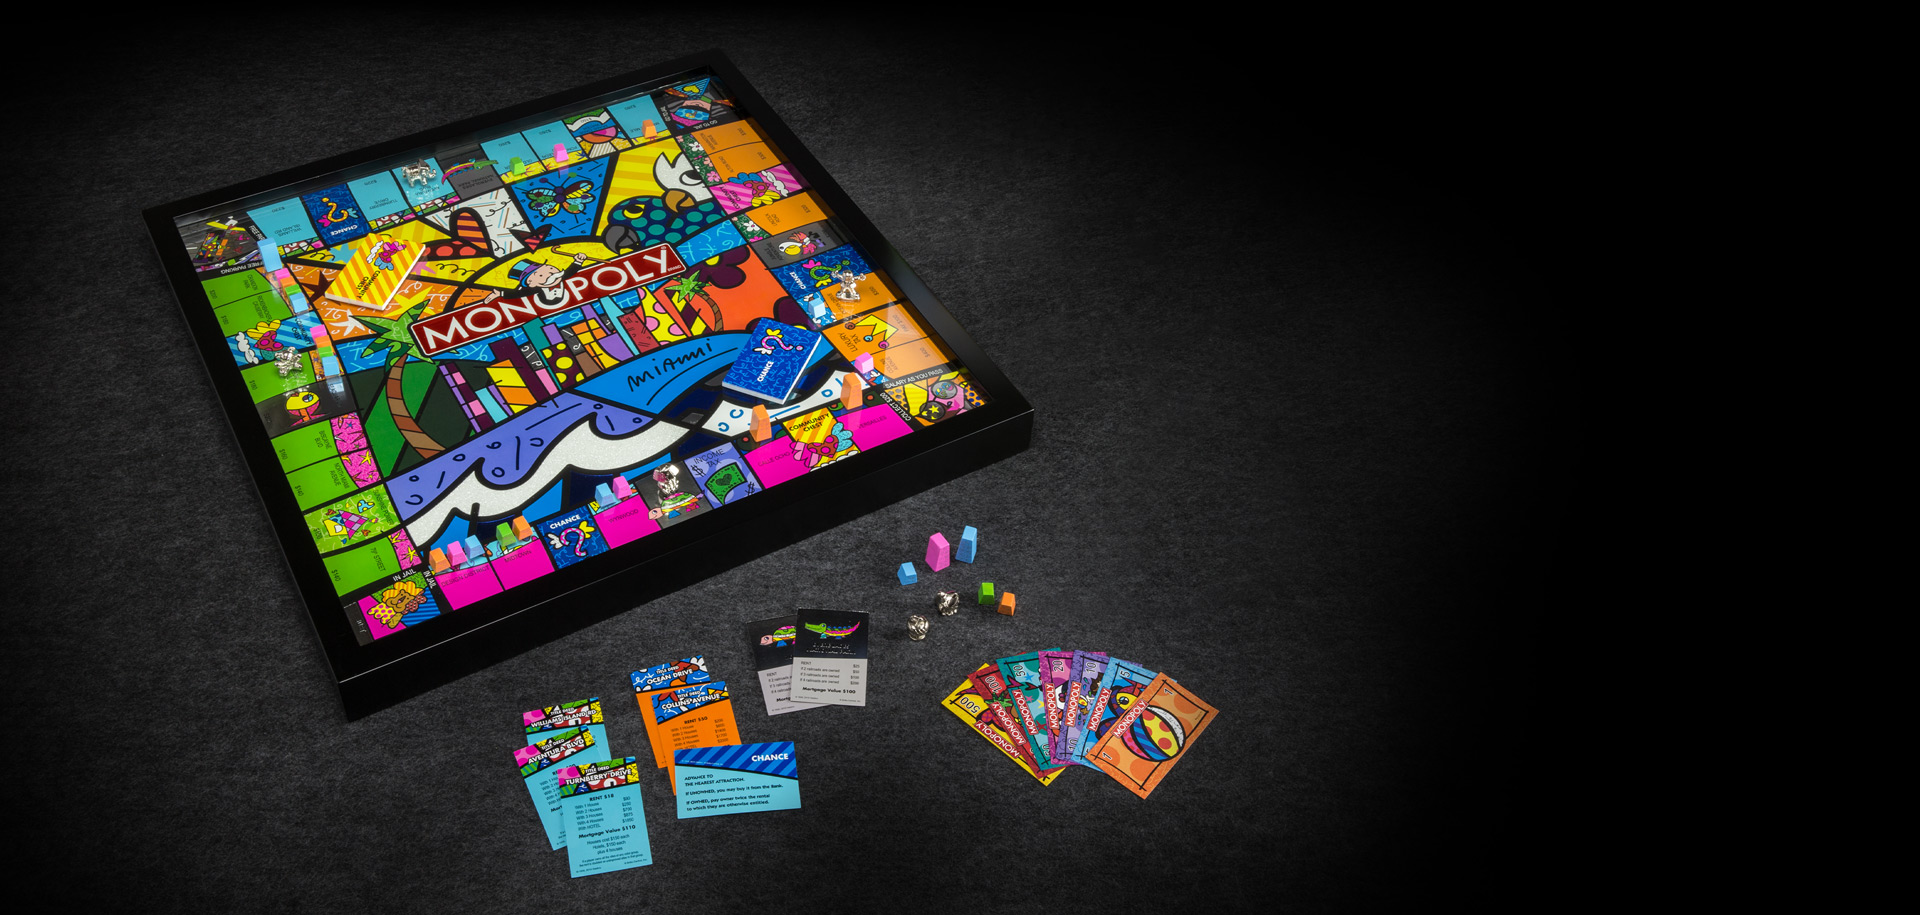 Monopoly Miami Edition By Romero Britto